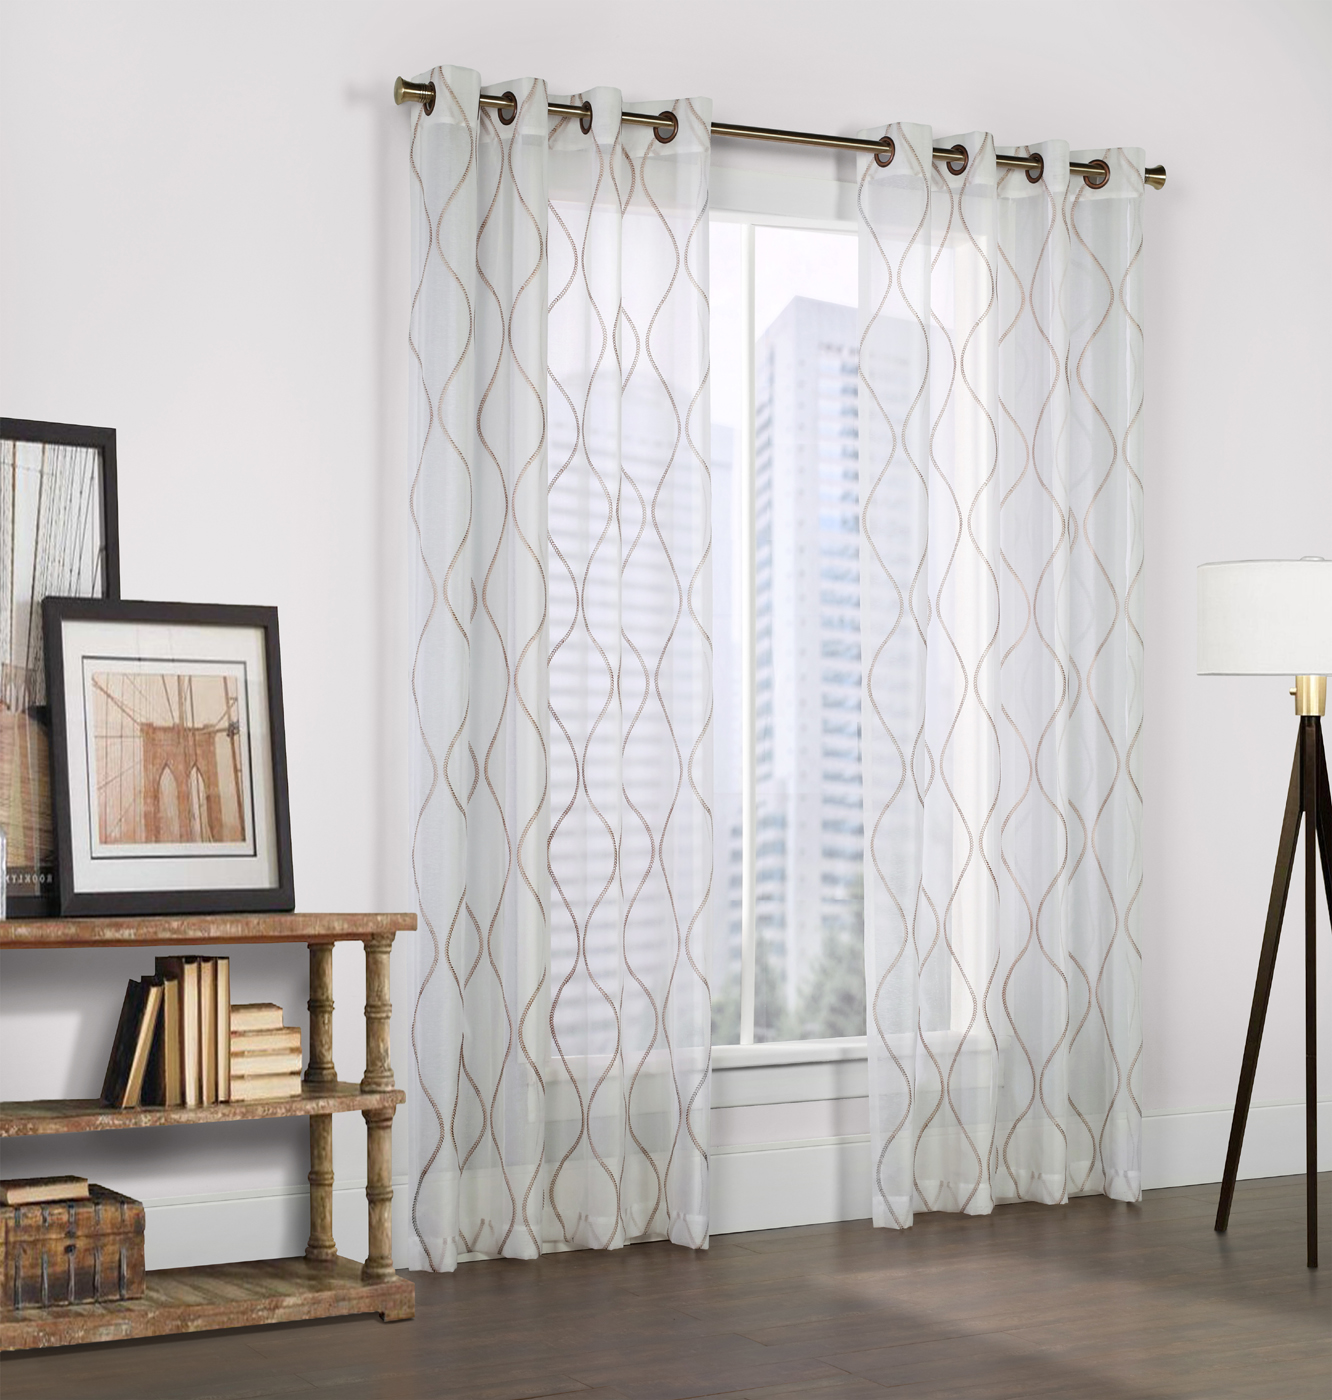 Curtain Sheers With Grommets Sheer Curtains With Grommets